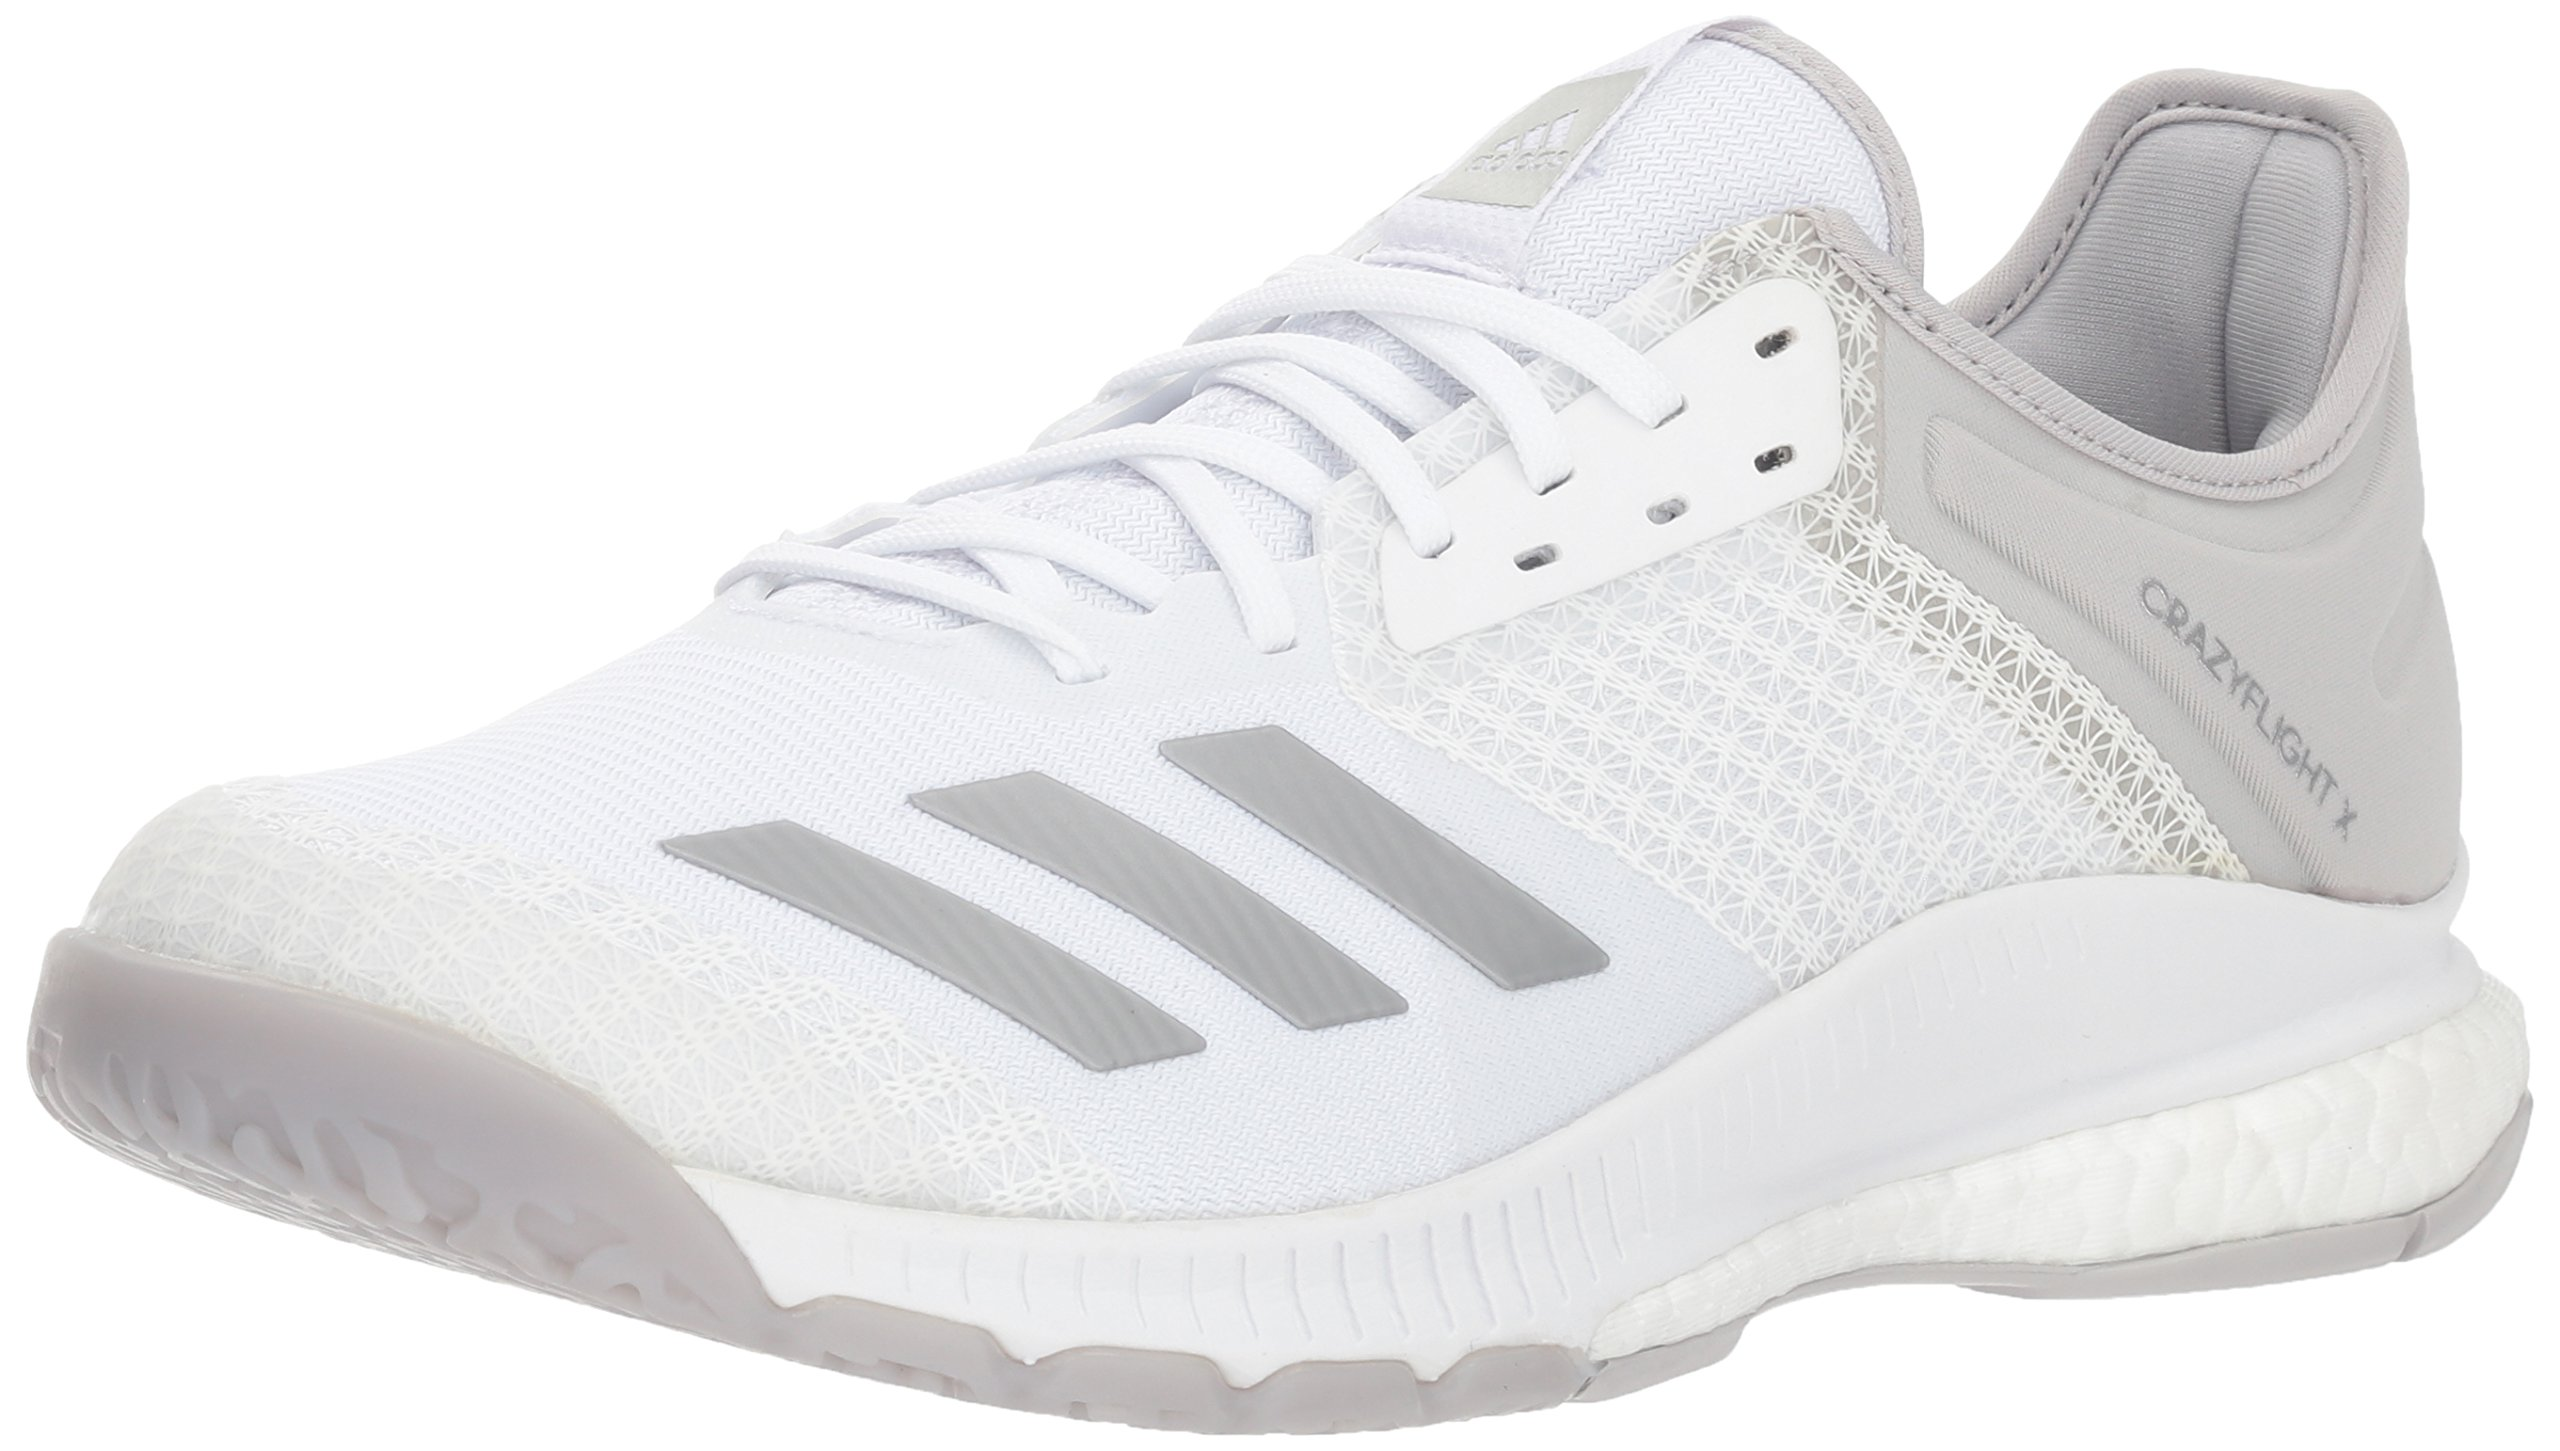 adidas Women's Crazyflight X 2 Volleyball Shoe, White/Silver Metallic/Grey, 5 M US